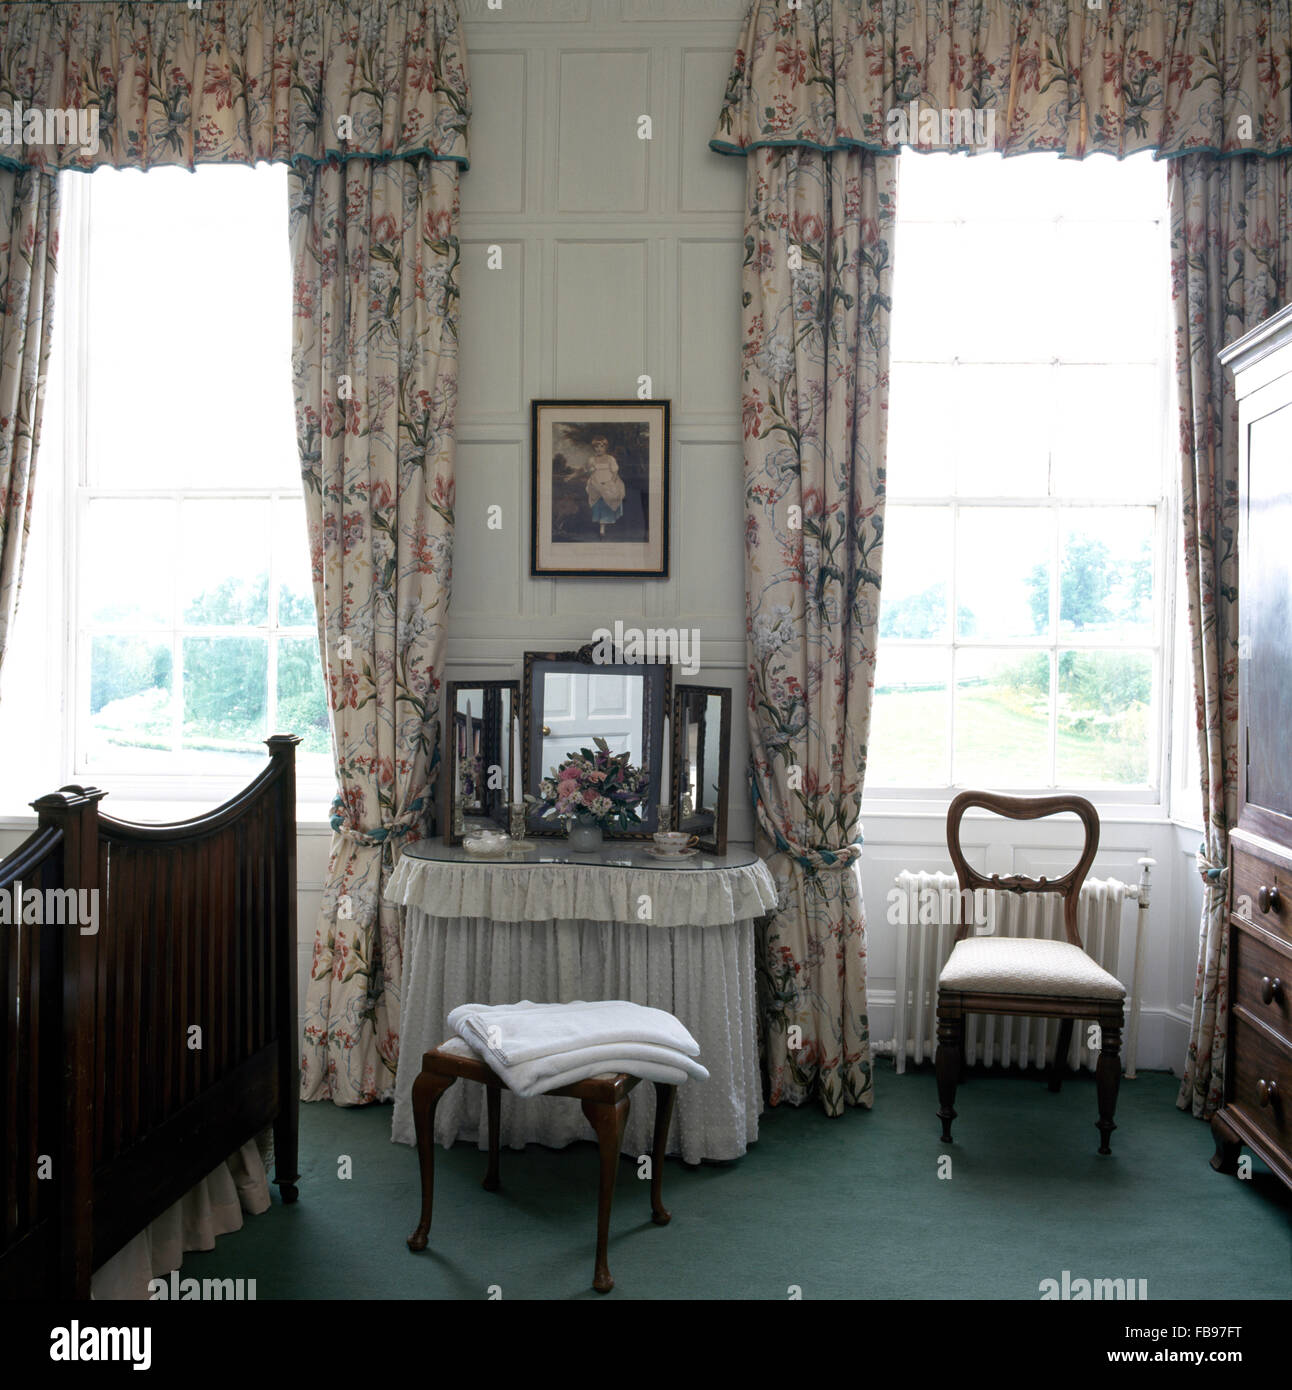 Kidney Shaped Dressing Table With White Drapes Between Tall Windows Floral Curtains In Large Country Bedroom